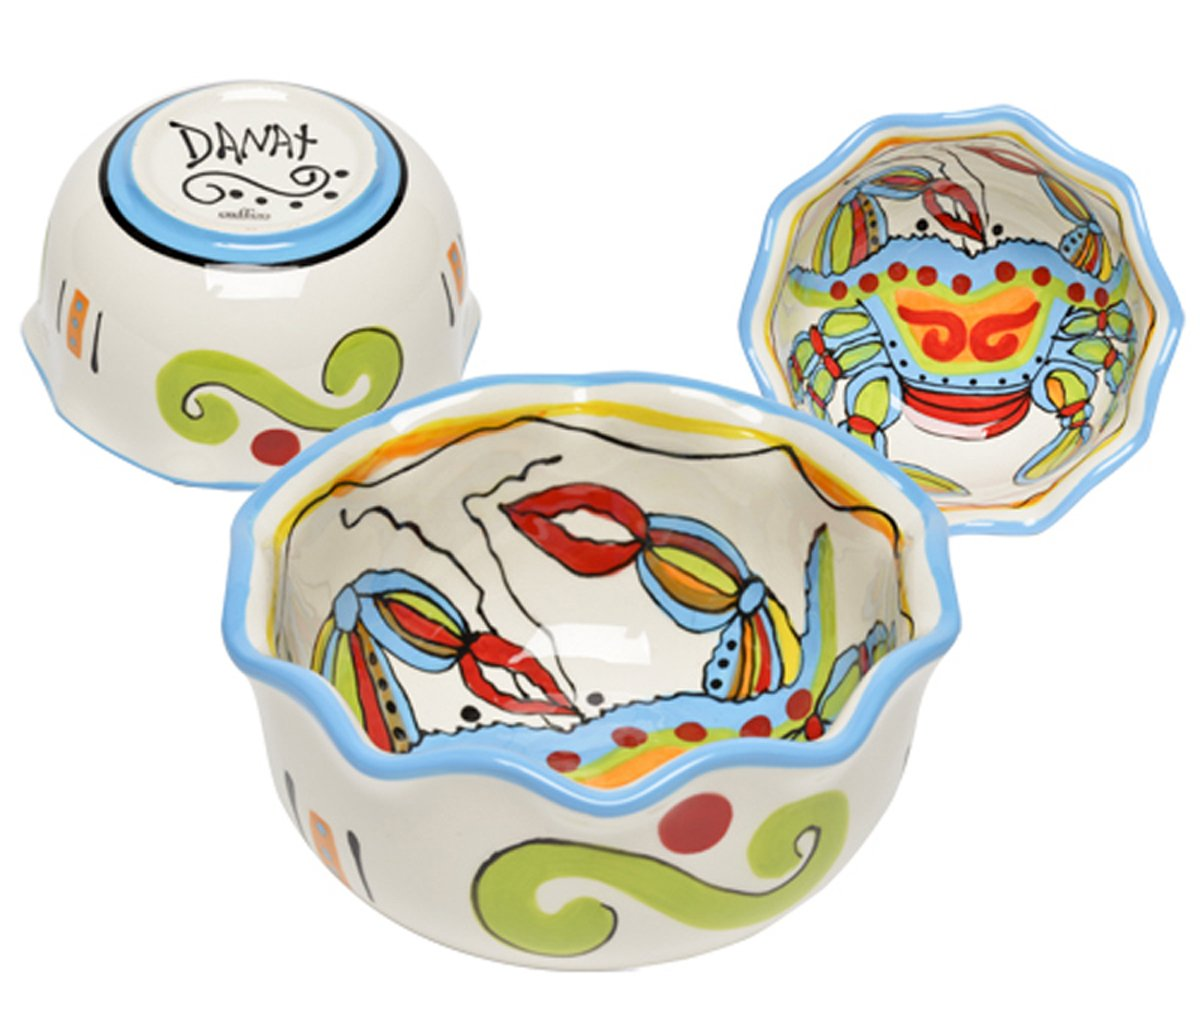 Christmas Tablescape Décor - Small ceramic whimsical crab multicolor serving bowl by Dana Wittmann